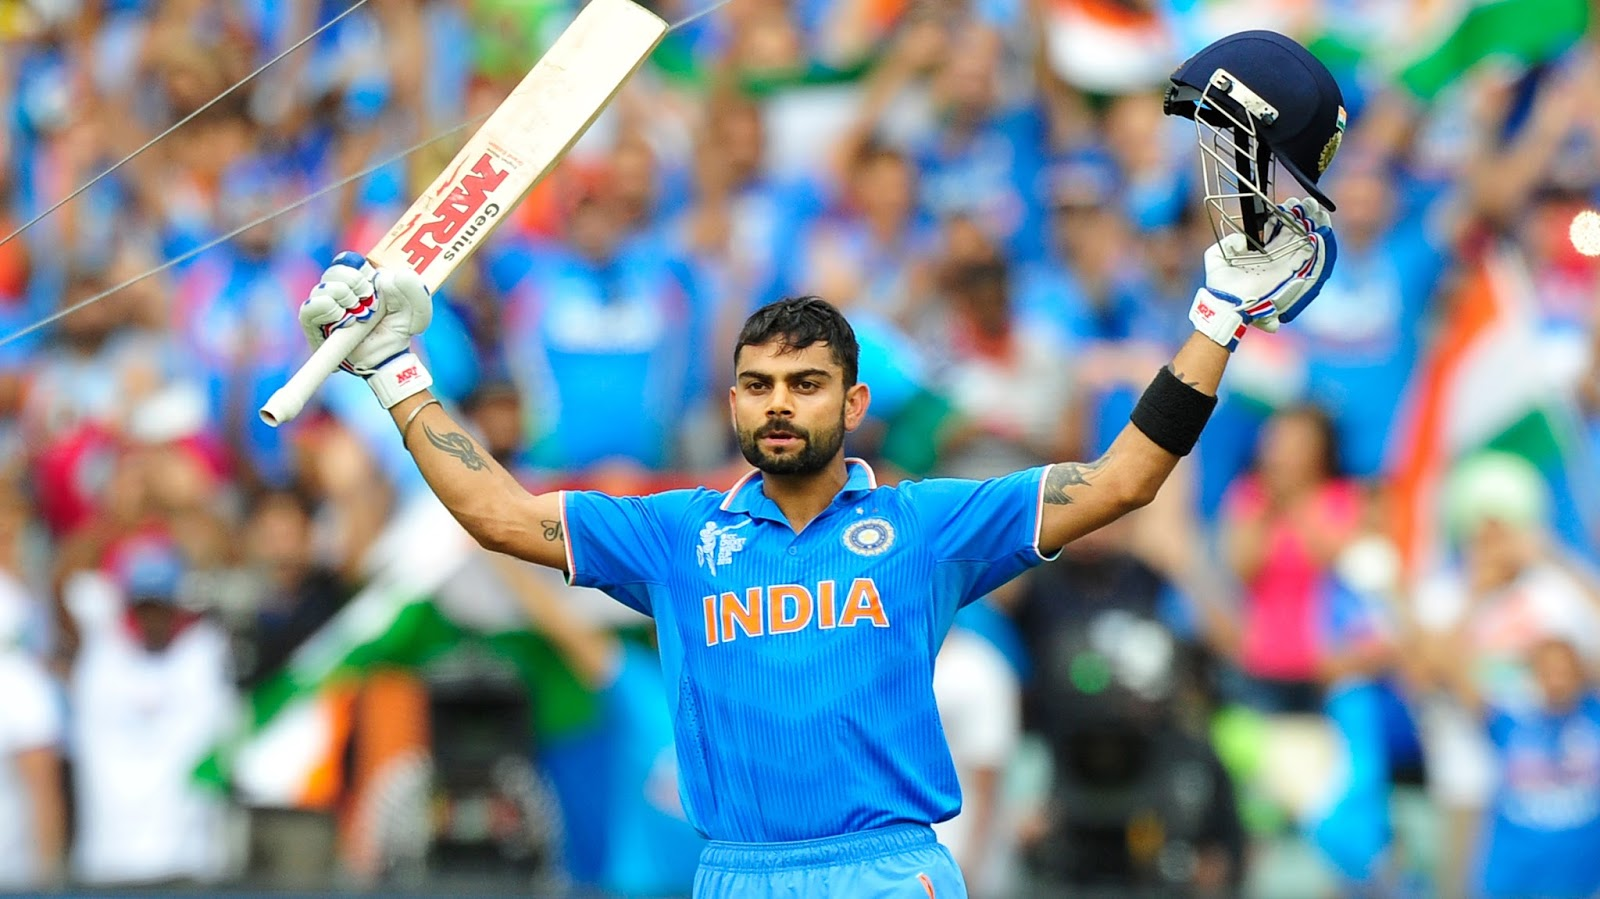 Virat Kohli Indian Cricketer 4k Ultra Hd Desktop Wallpapers Free